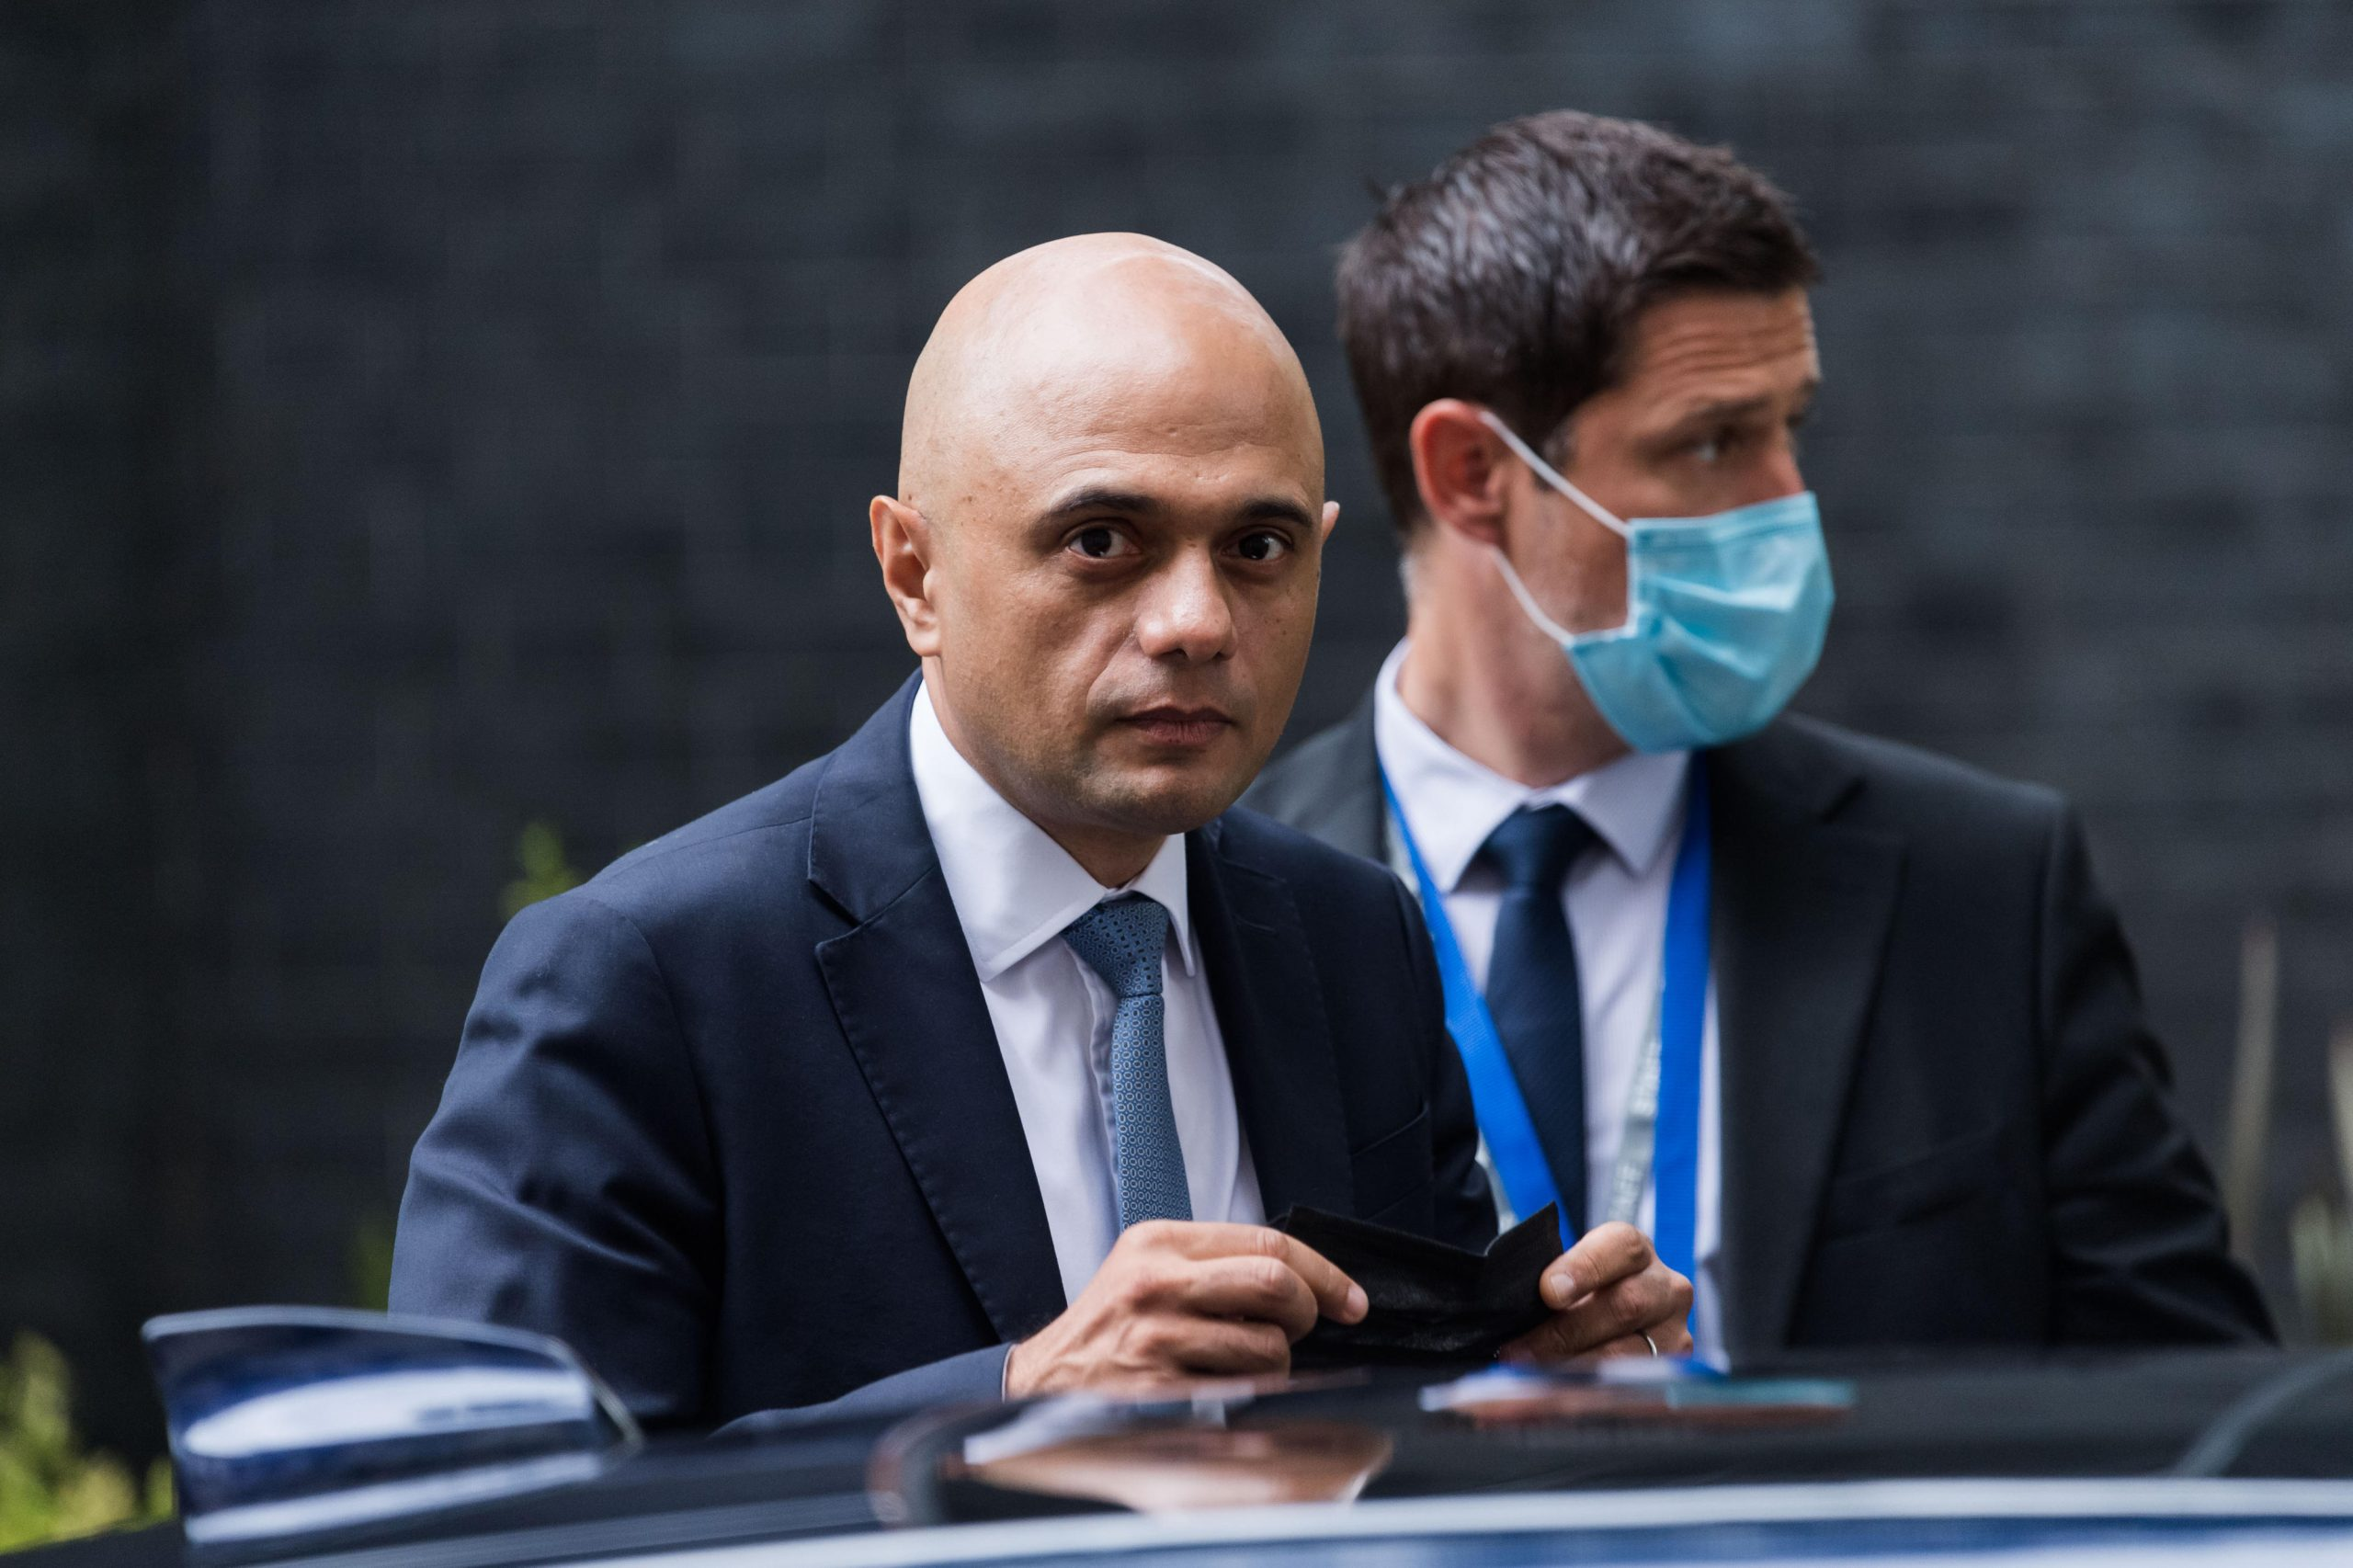 Health secretary Sajid Javid, who was forced to apologise for language used in a tweet.